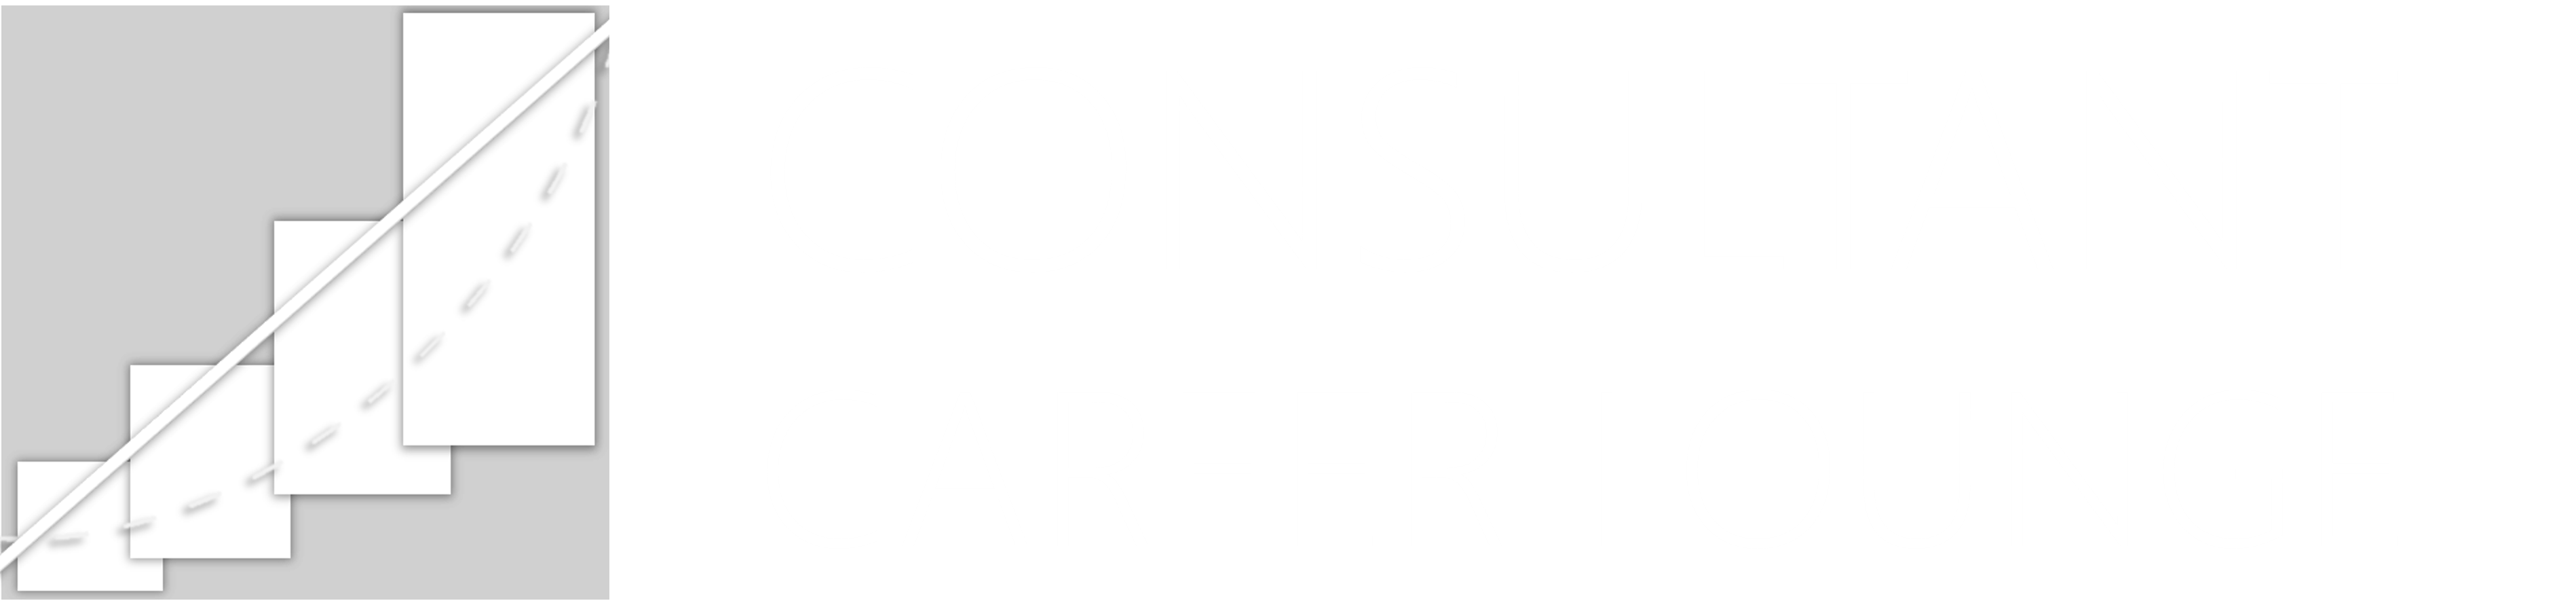 CONSULTANT career lounge